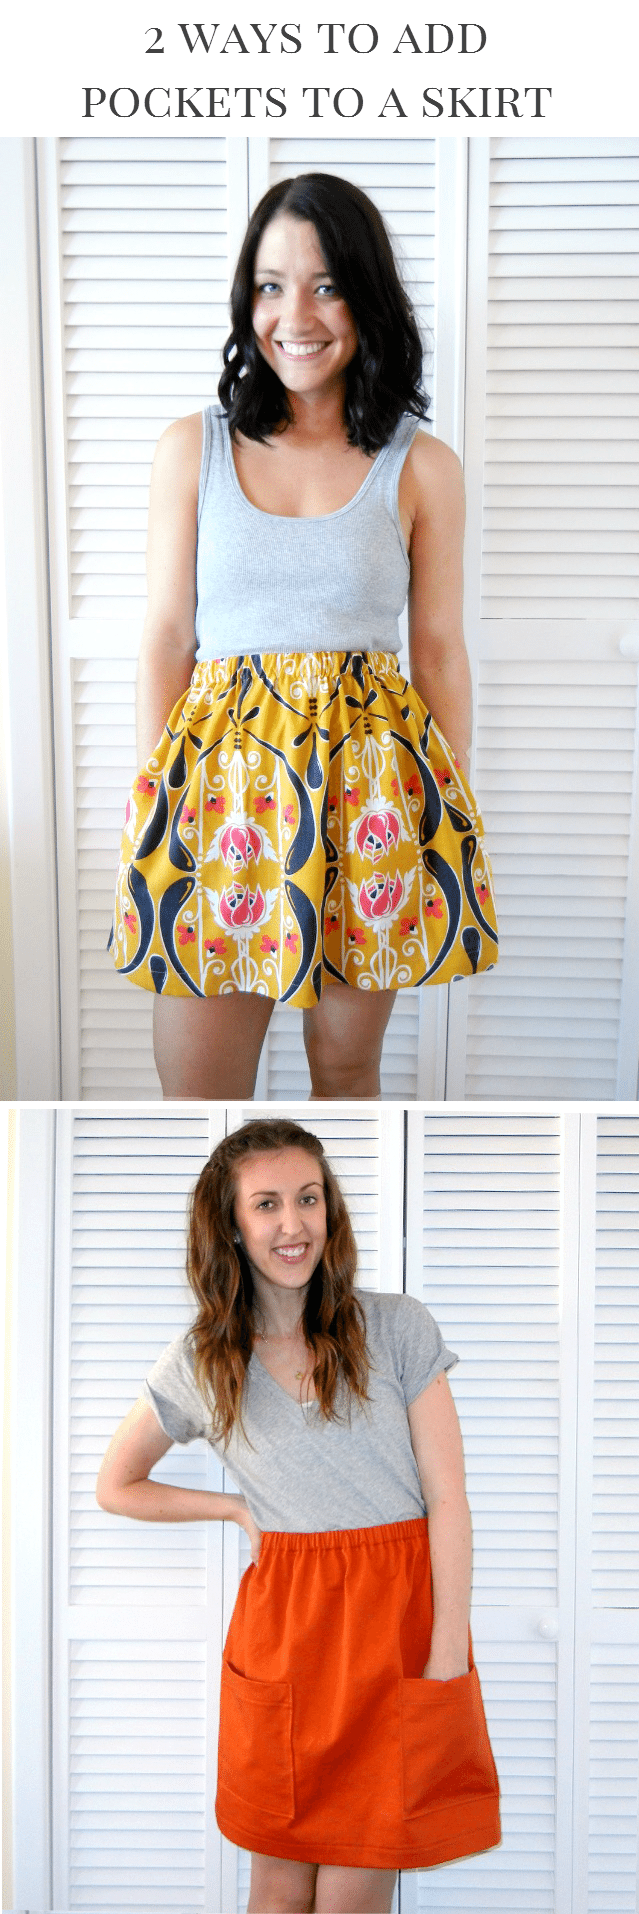 How to Add Pockets to a Skirt